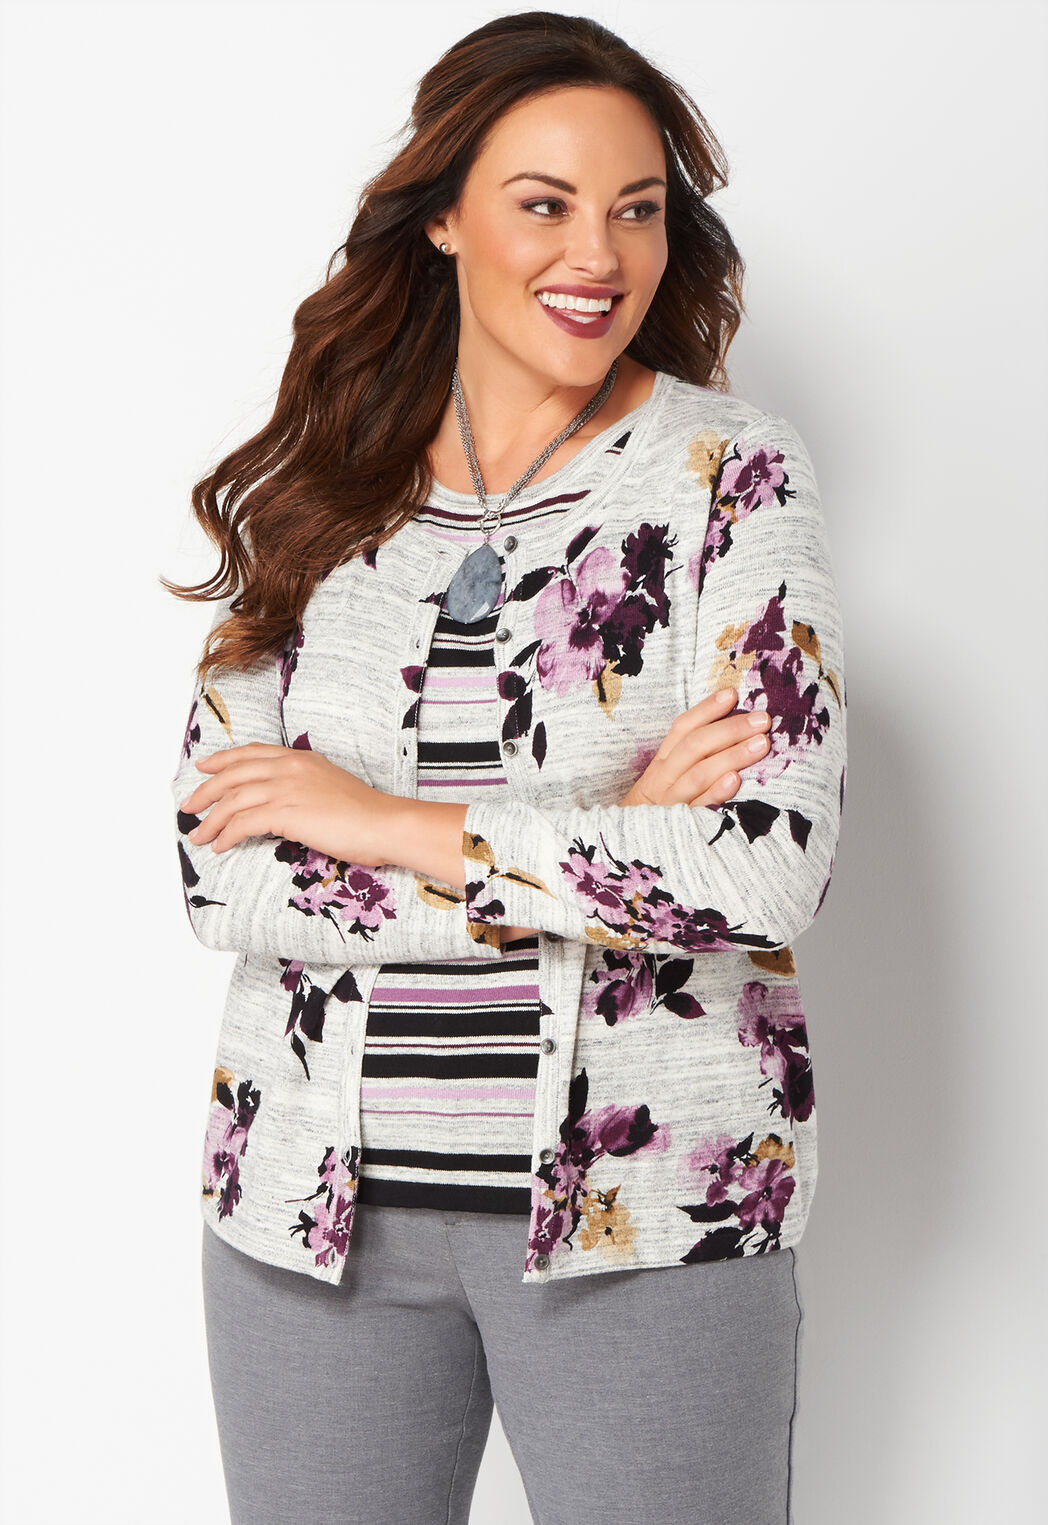 Torrid History. Torrid was founded in as an off-shoot of the company Hot Topic. The company offers plus sized women's and girl's clothing between sizes 10 and